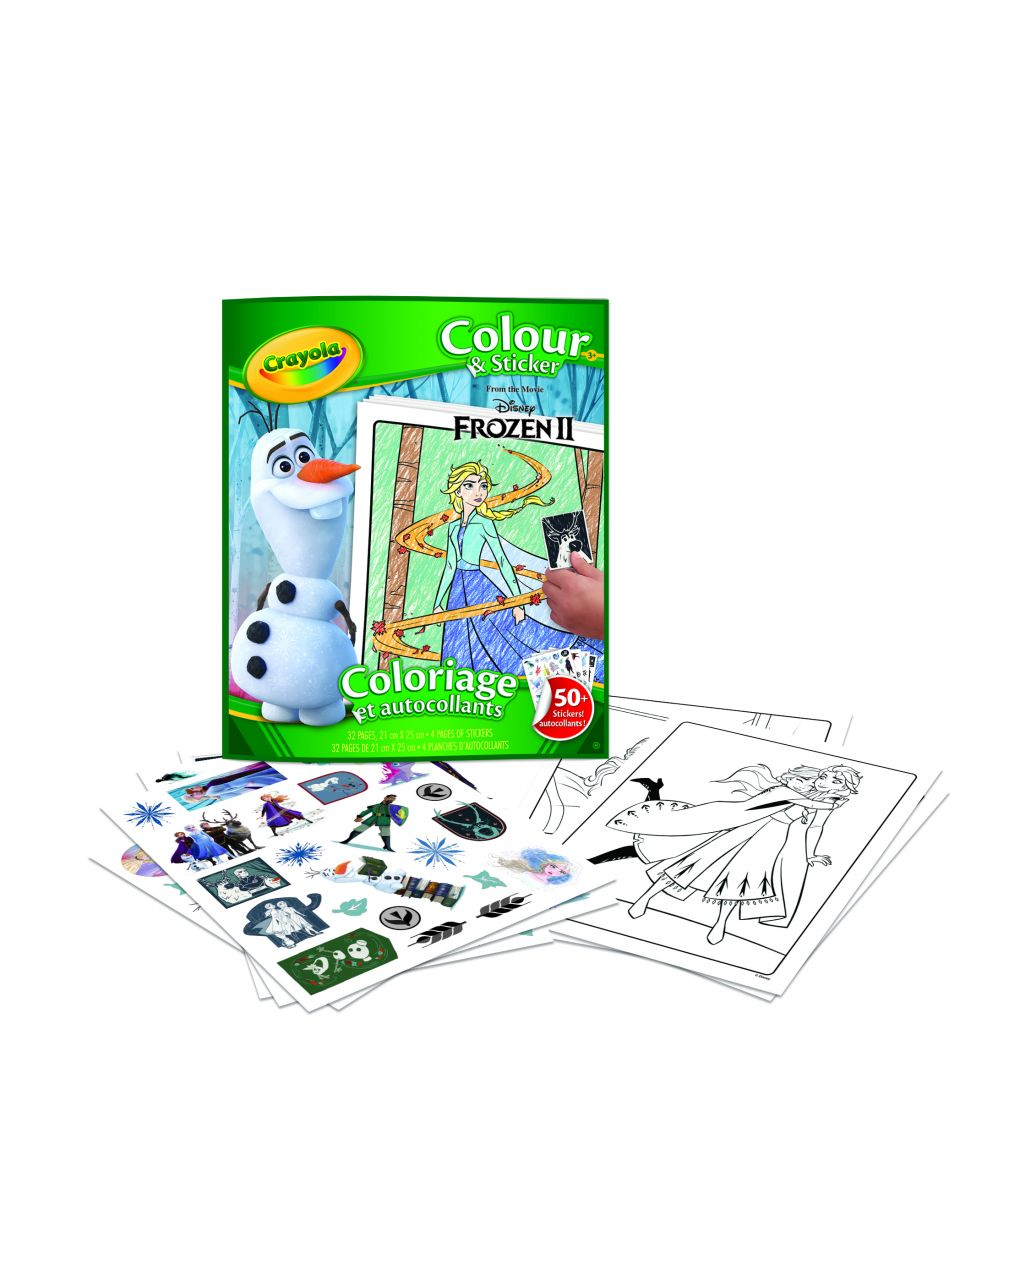 Crayola - album color'n stickers disney frozen 2 - Crayola